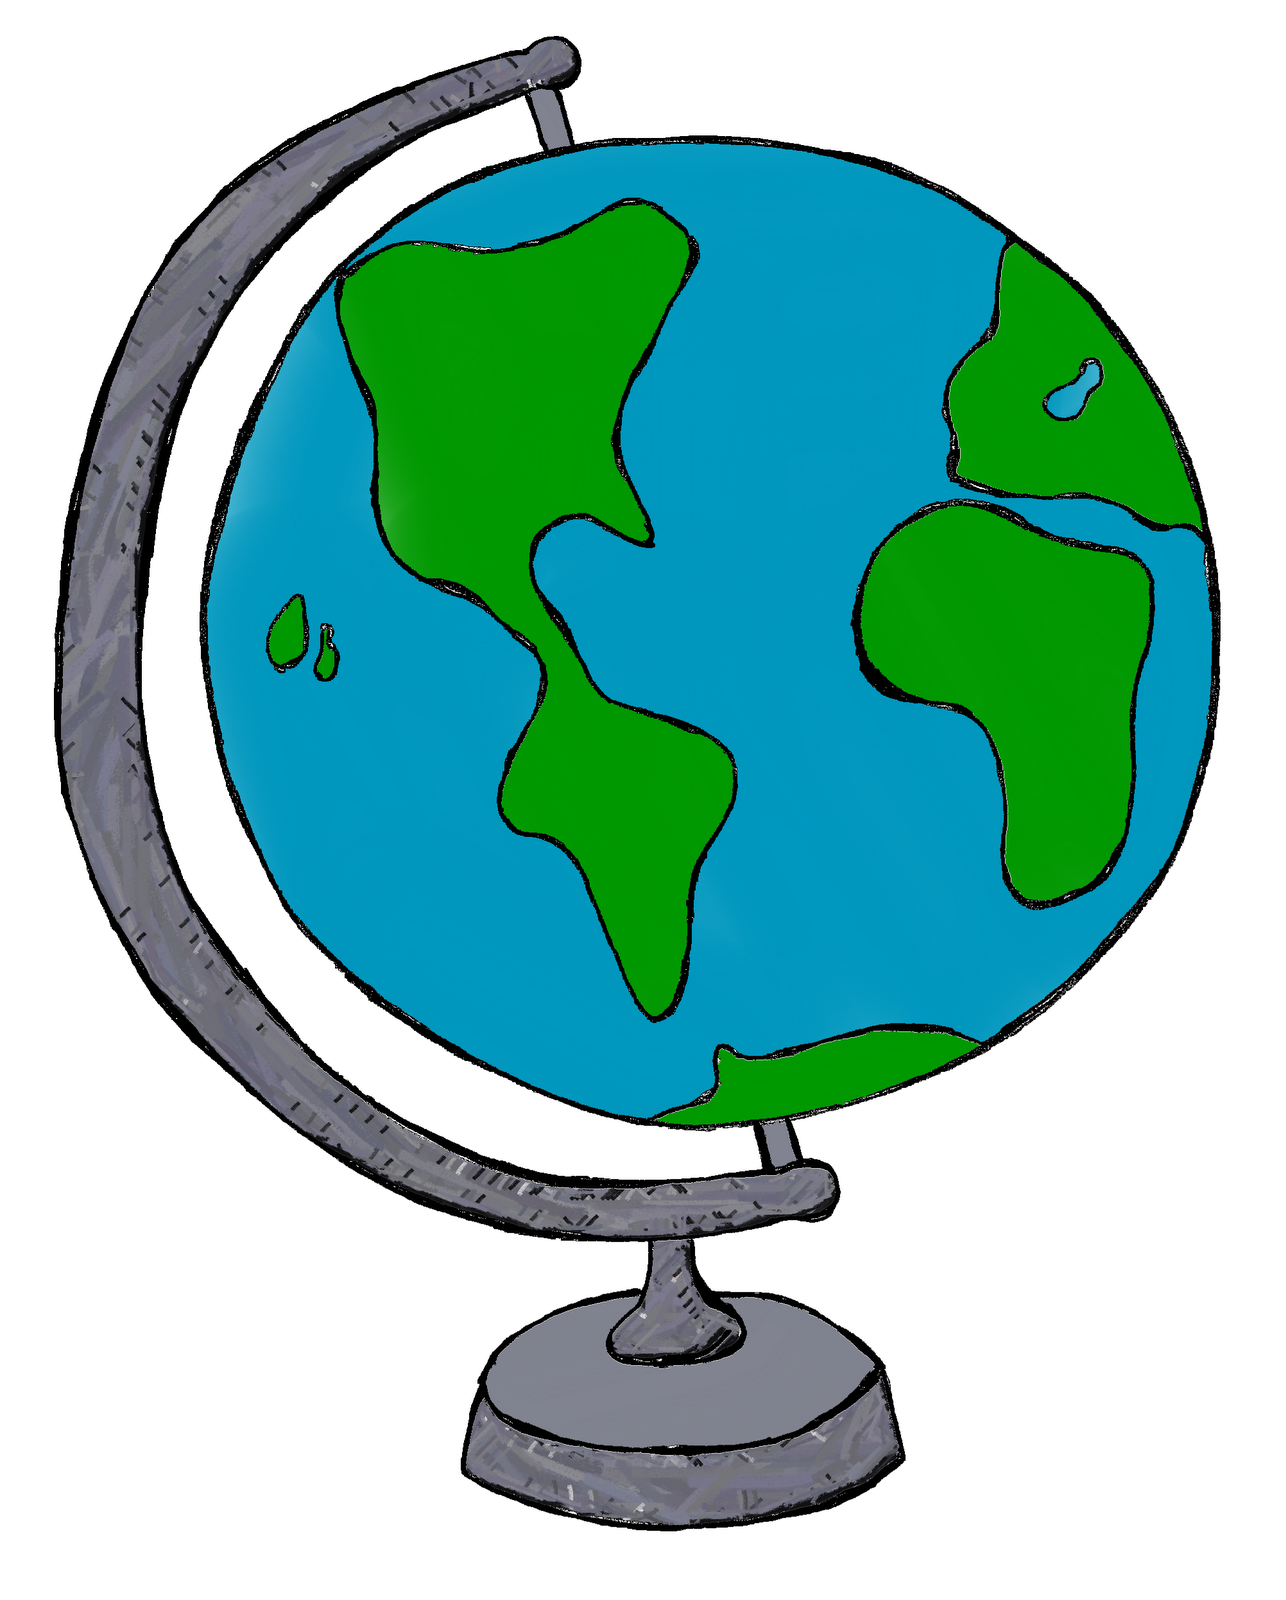 Globe clipart png. Clip art by carrie